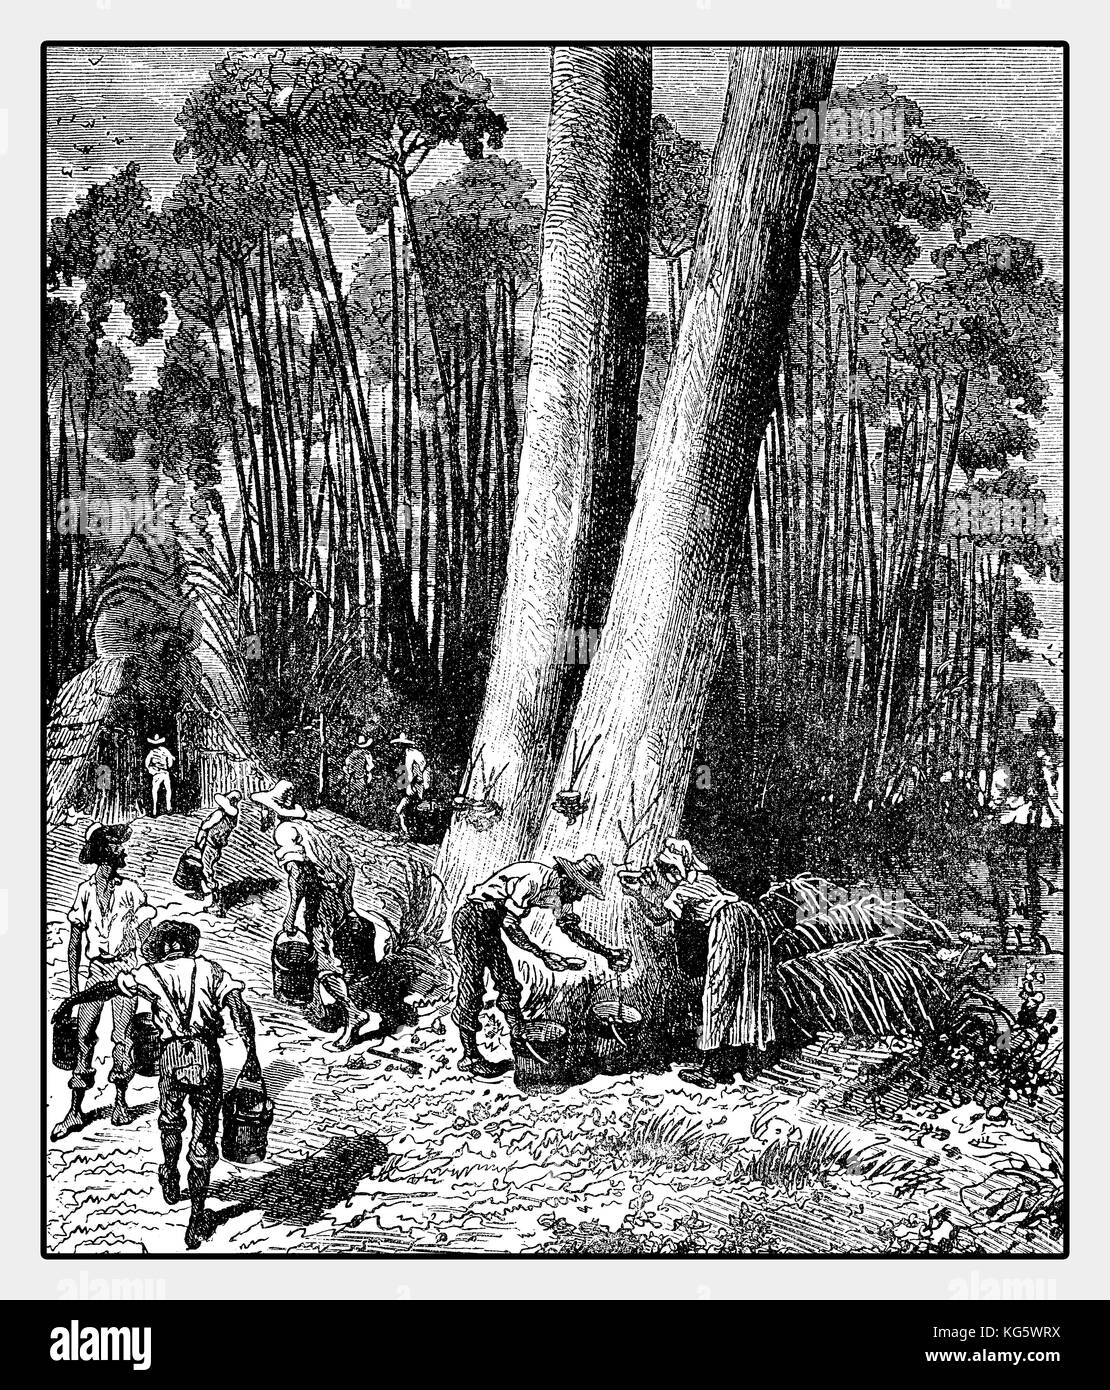 XIX century illustration of latex harvesting from rubber tree in Brazil for caoutchouc production with incisions - Stock Image